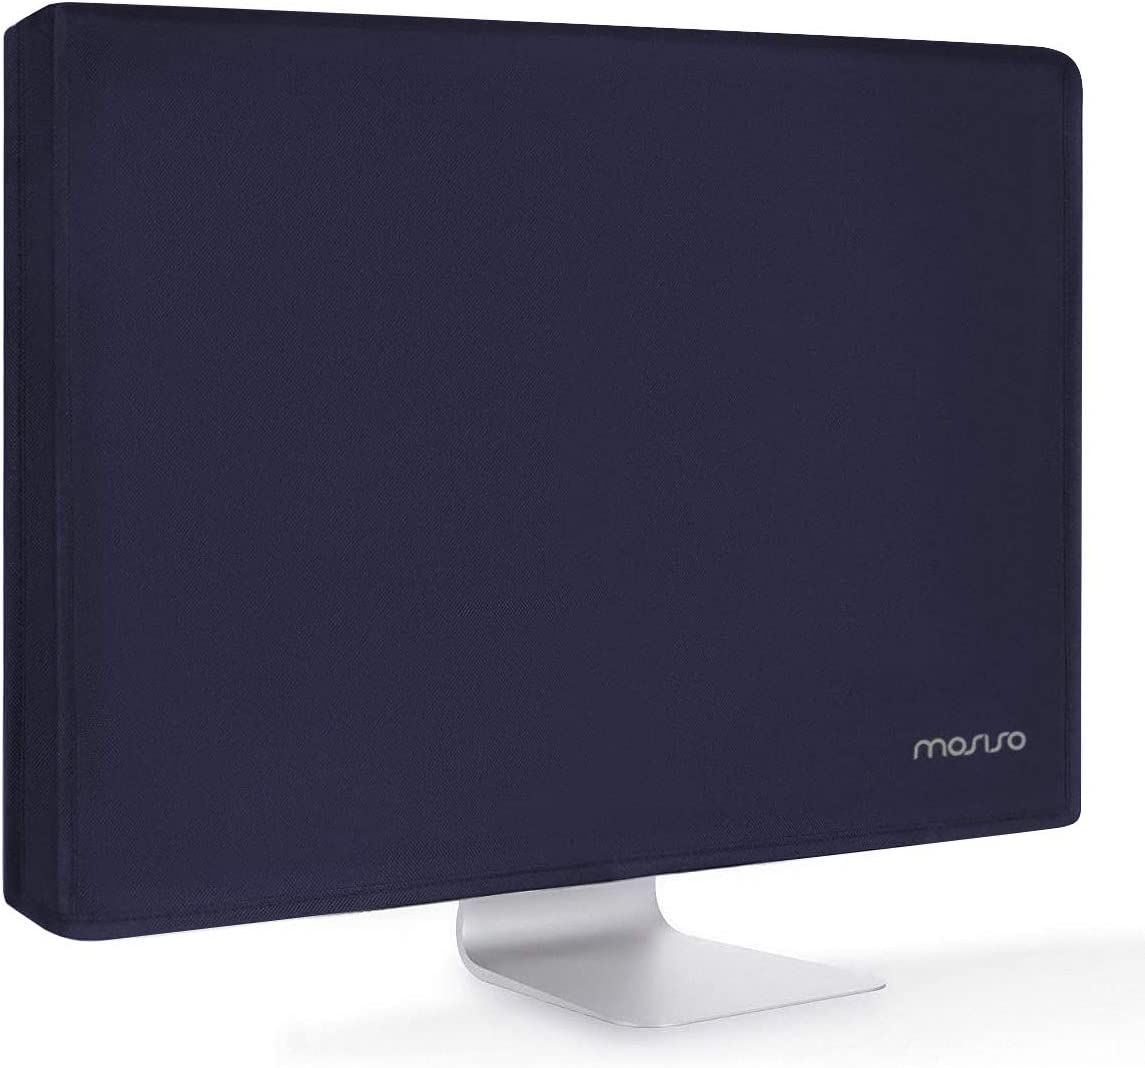 MOSISO Monitor Dust Cover 19,19.5,20,20.5,21 inch Anti-Static Polyester LCD/LED/HD Panel Case Screen Display Protective Sleeve Compatible with 19-21 inch PC, Desktop Computer and TV, Navy Blue